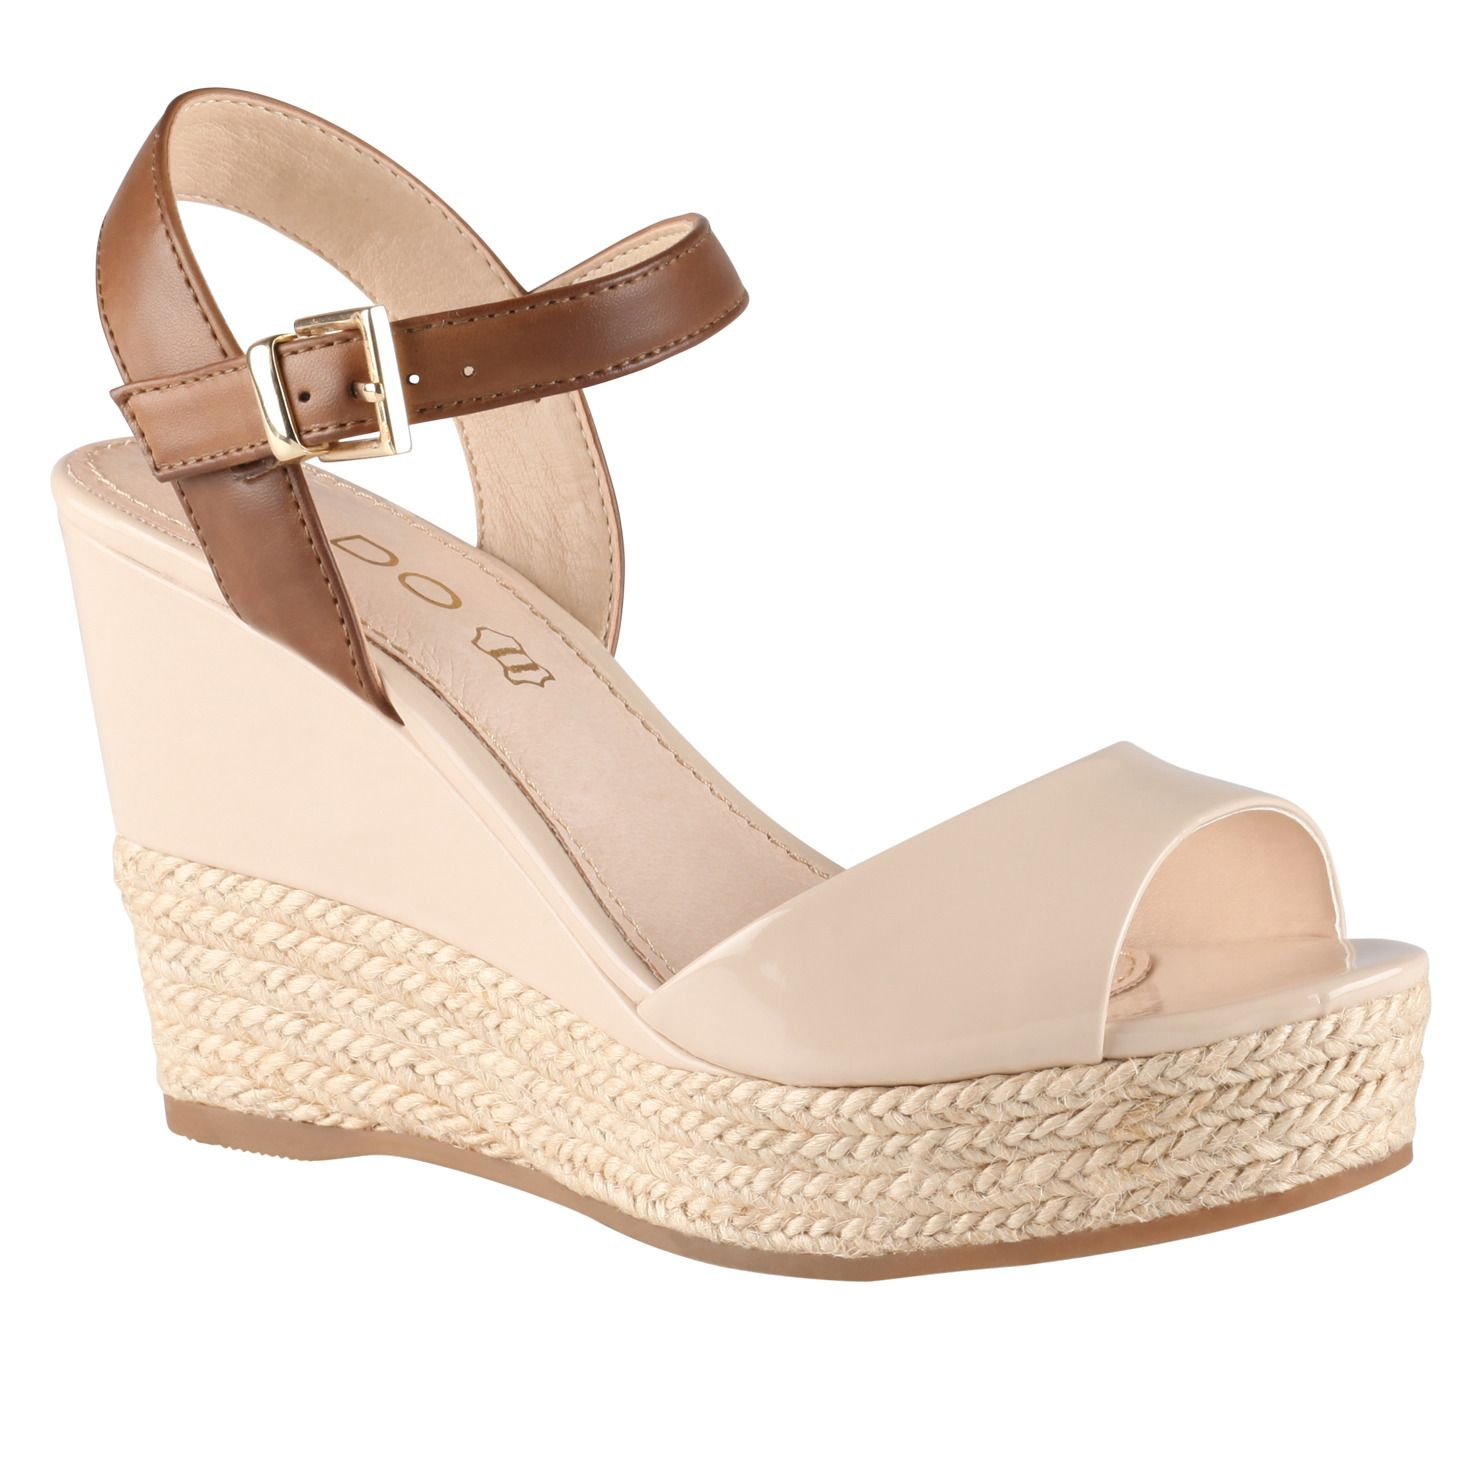 SCLAFANI - womens wedges sandals for